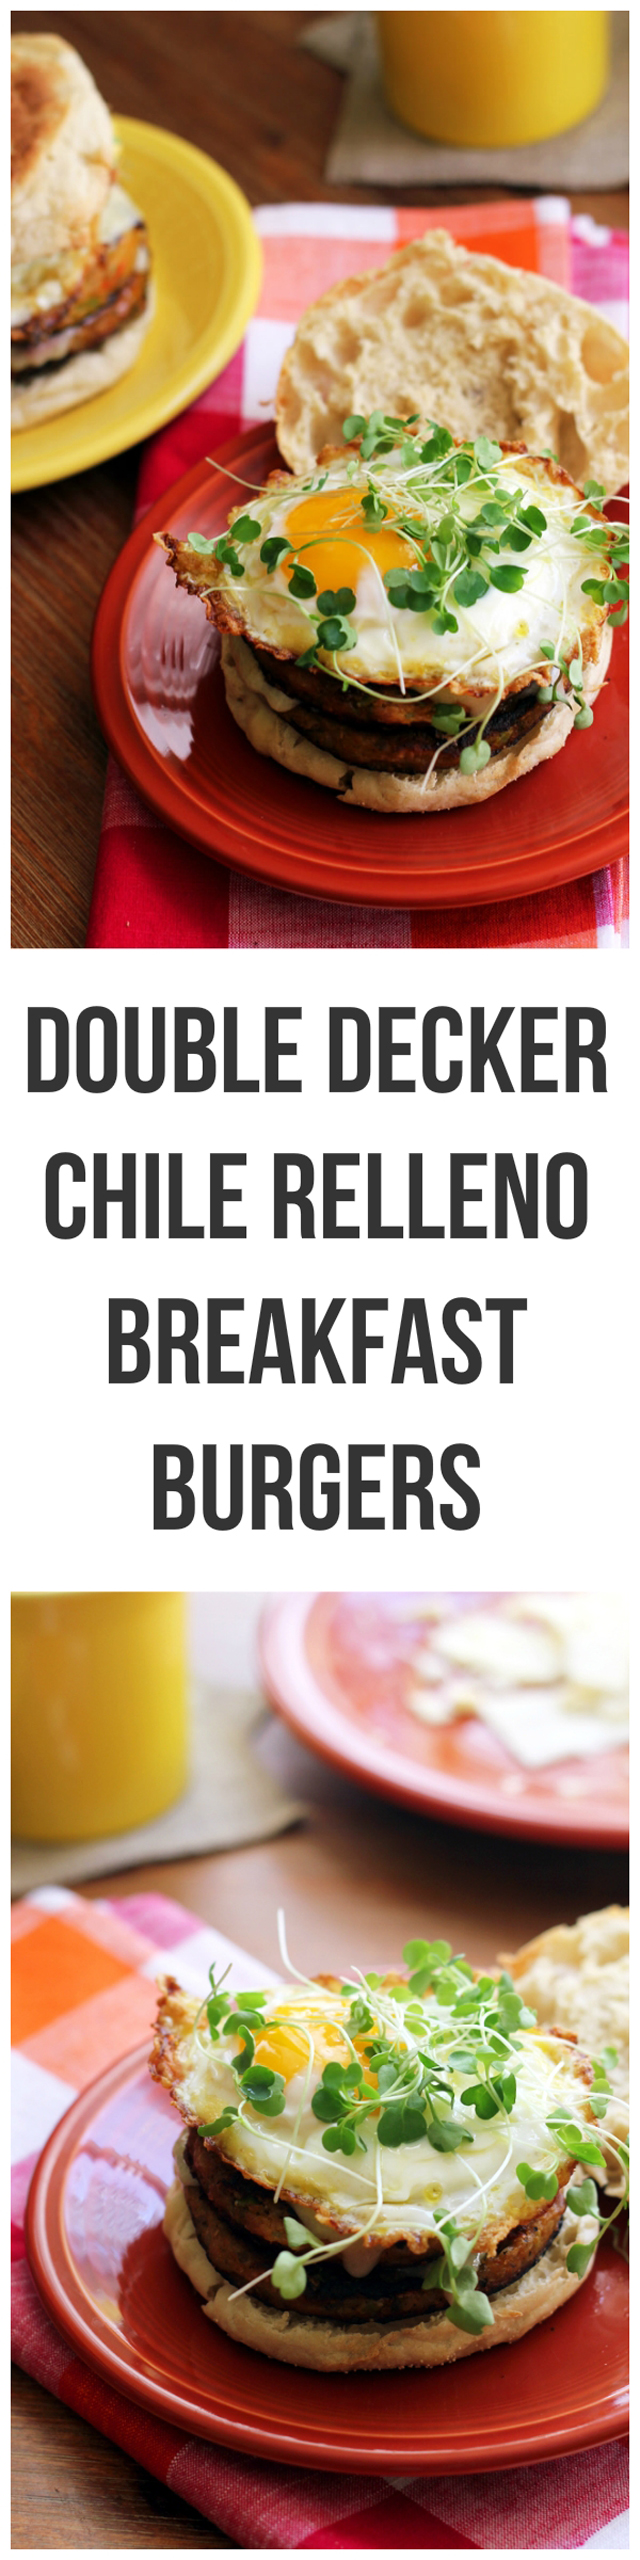 double decker chile relleno breakfast burgers